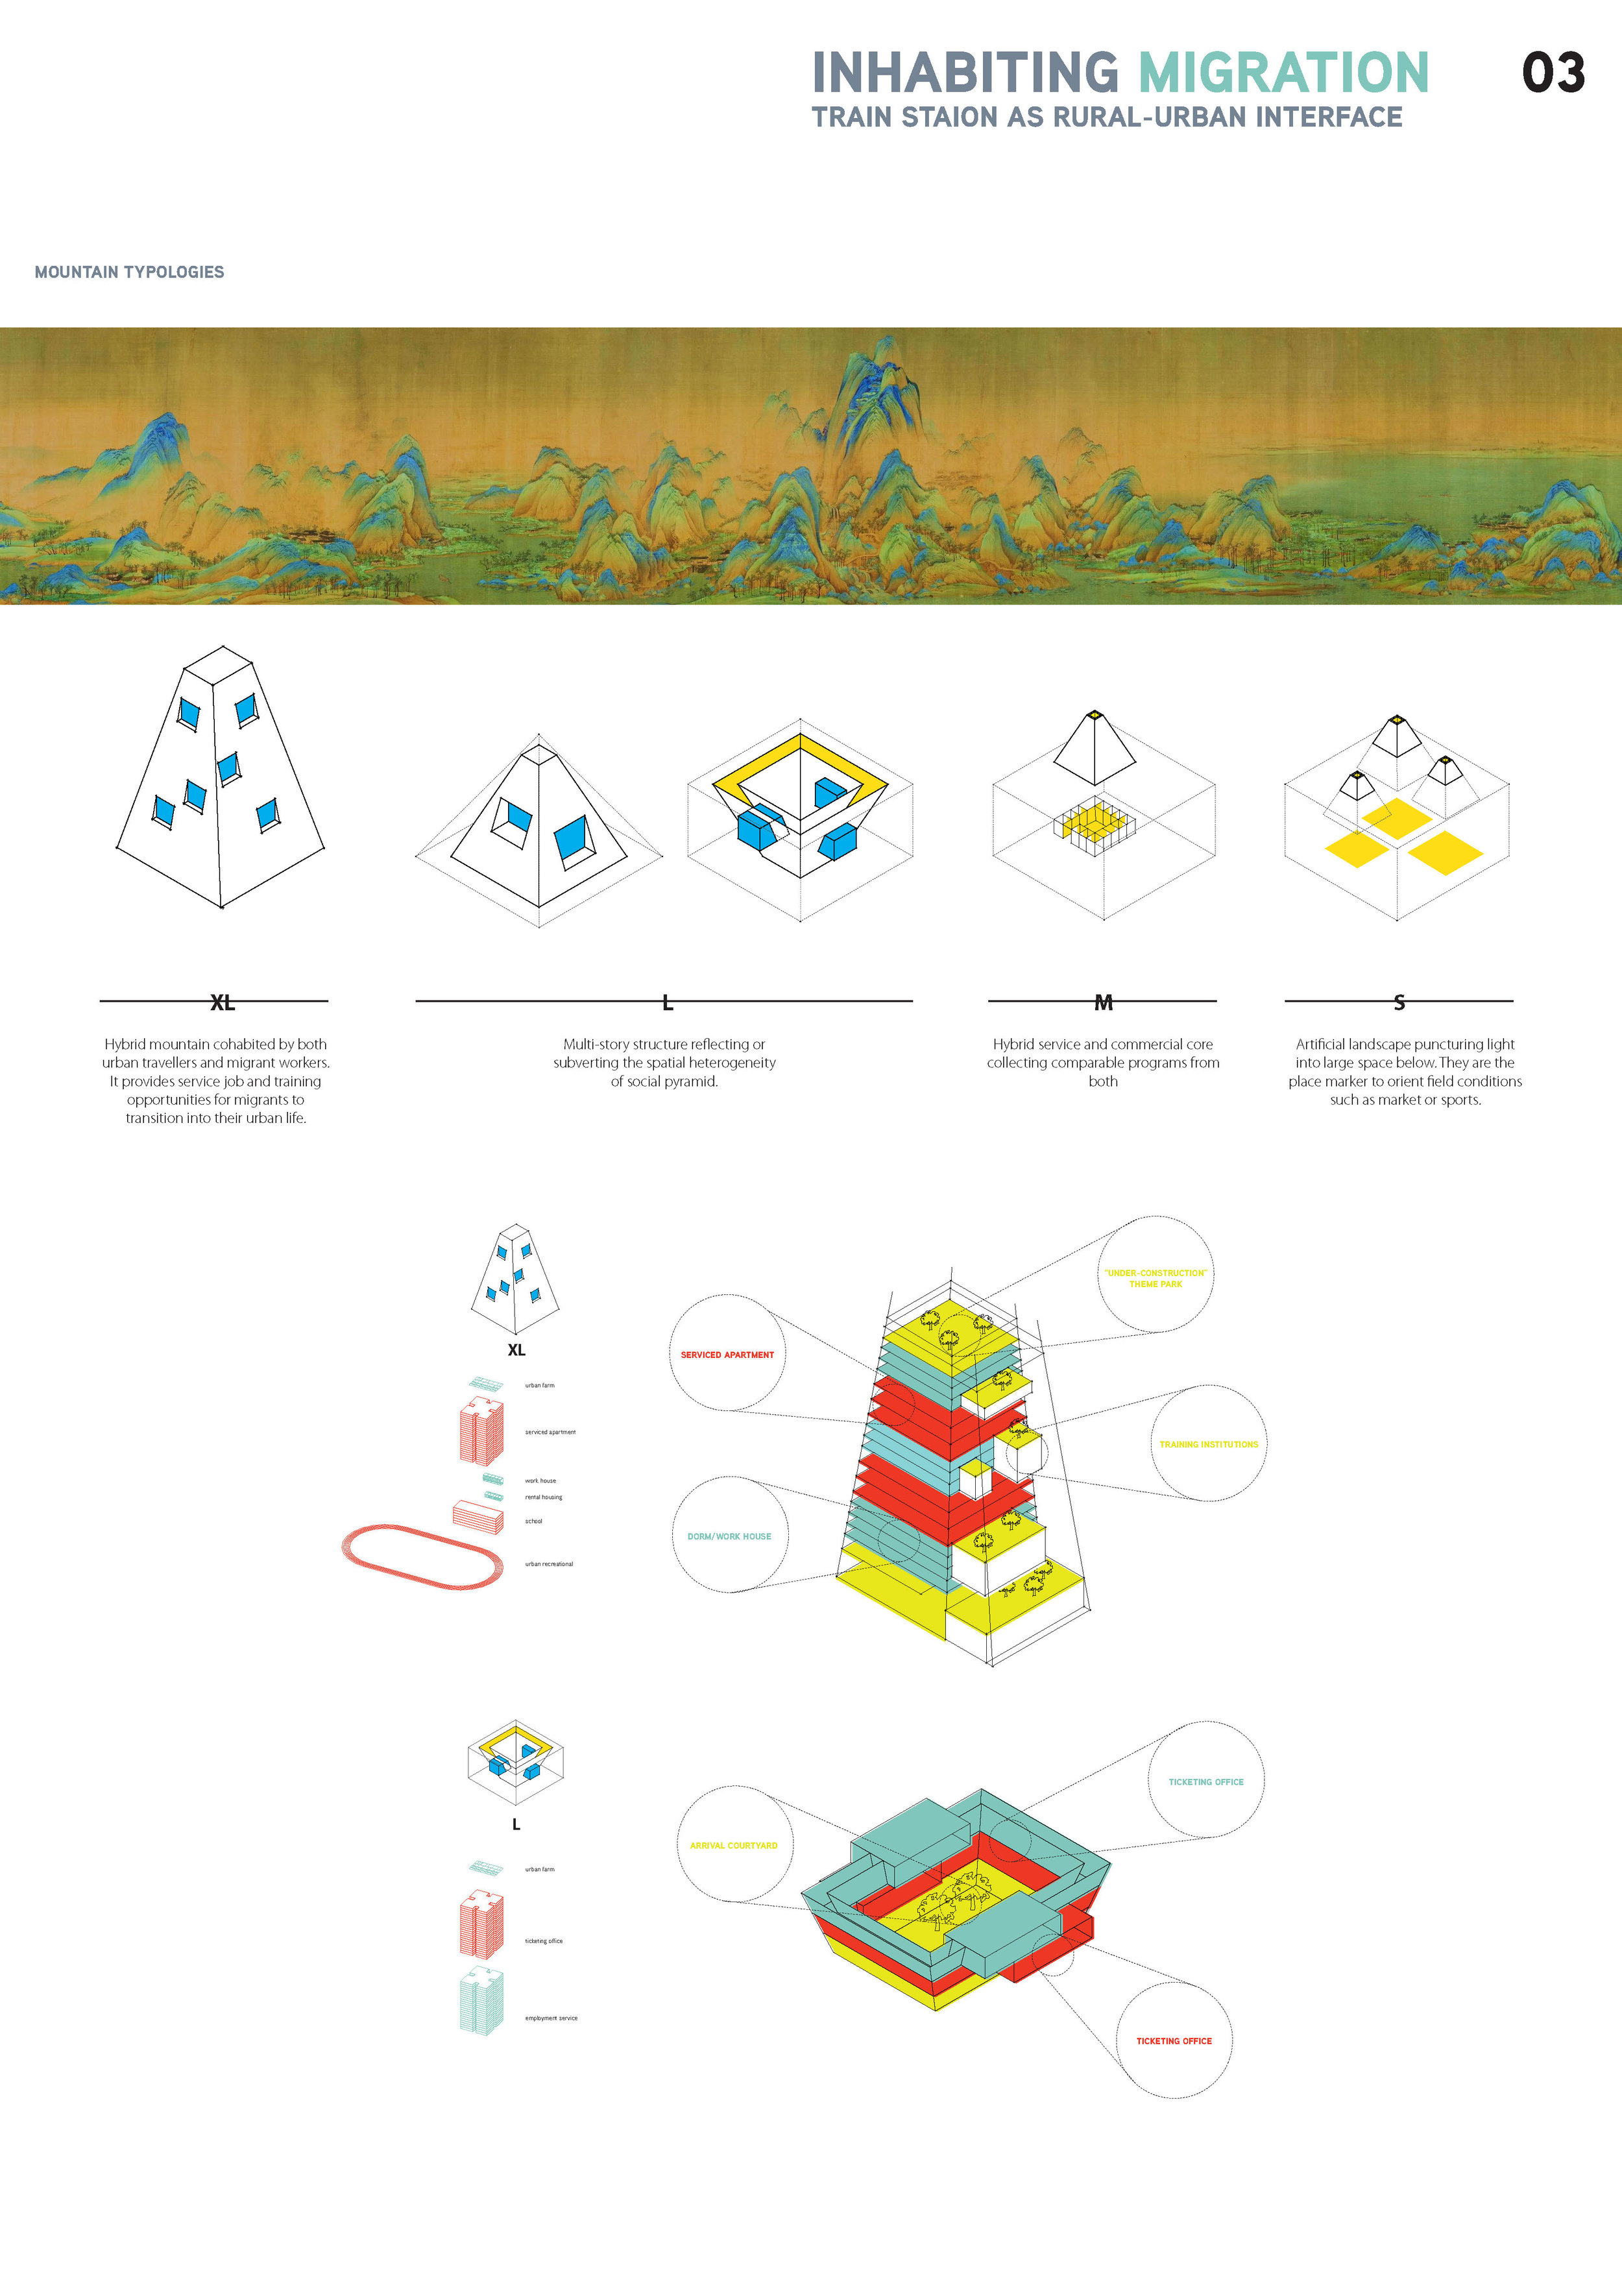 Inhabitating Migration_Program Typologies